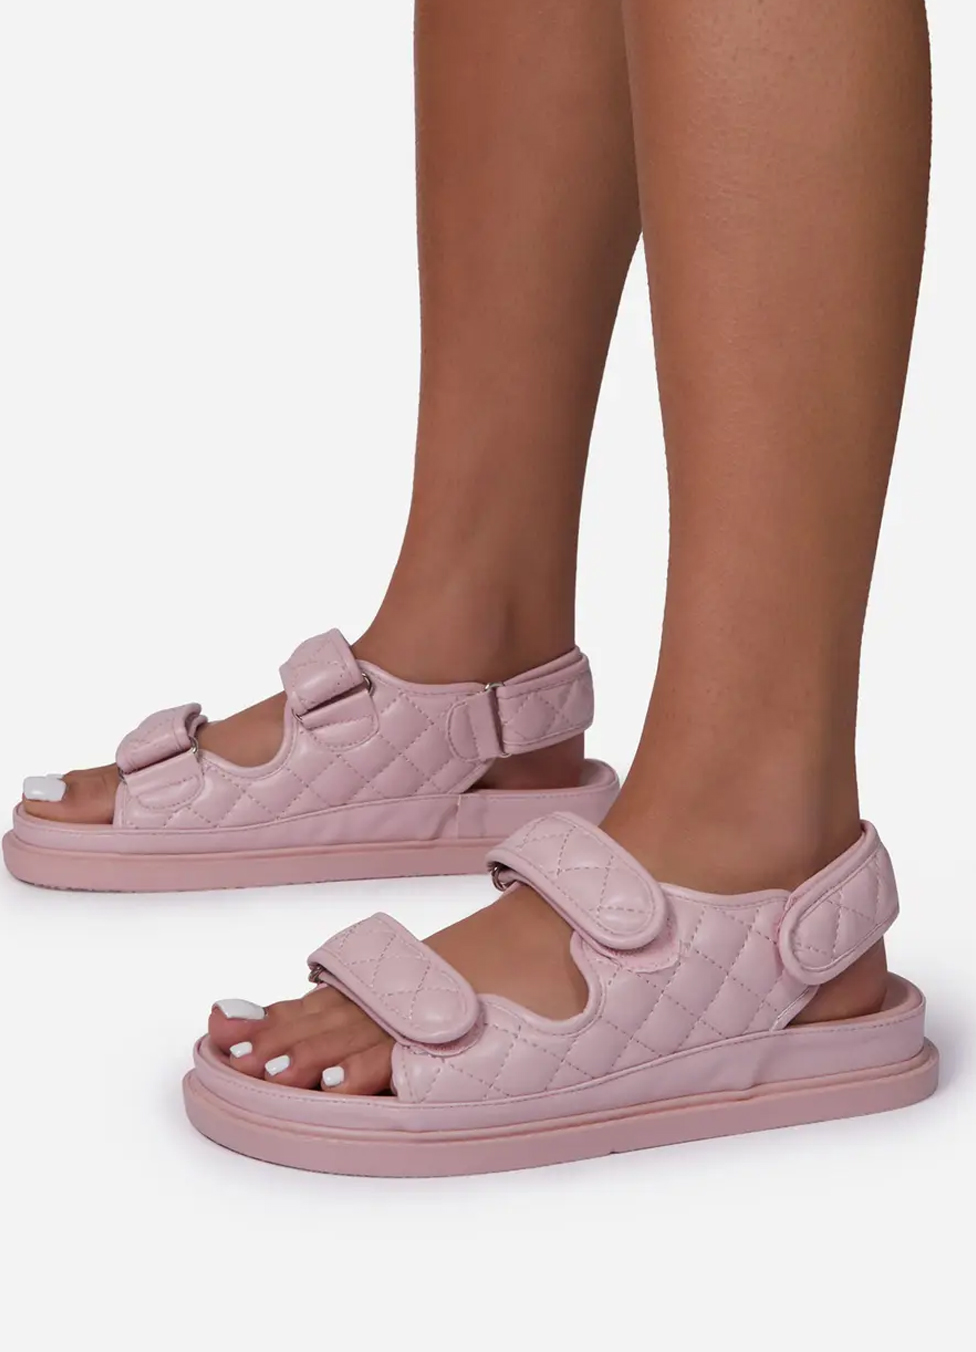 chanel sandals dupe 2021